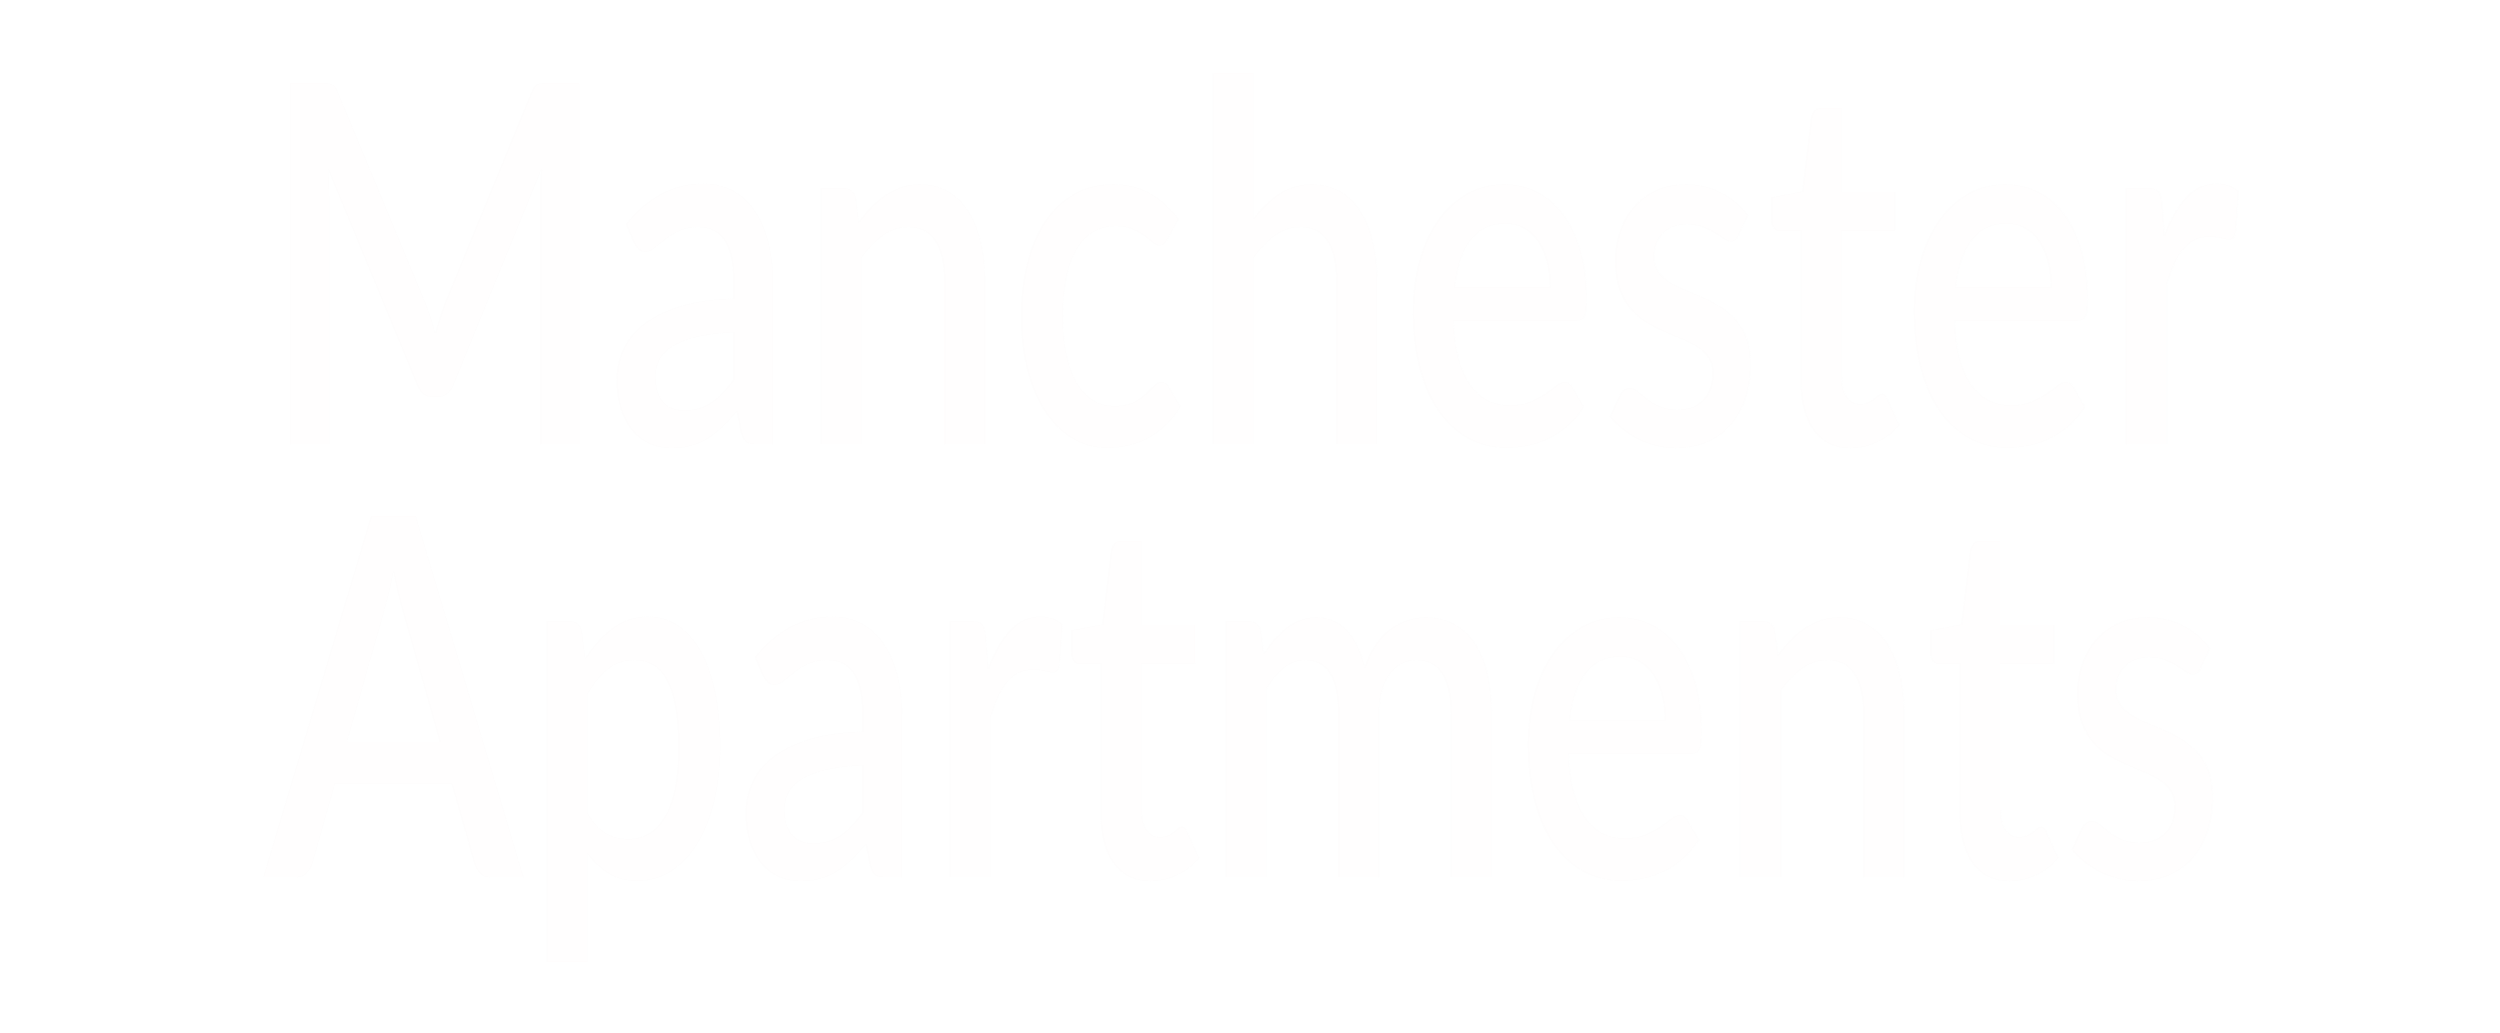 MANCHESTER APARTMENTS | Apartments in San Leandro, CA